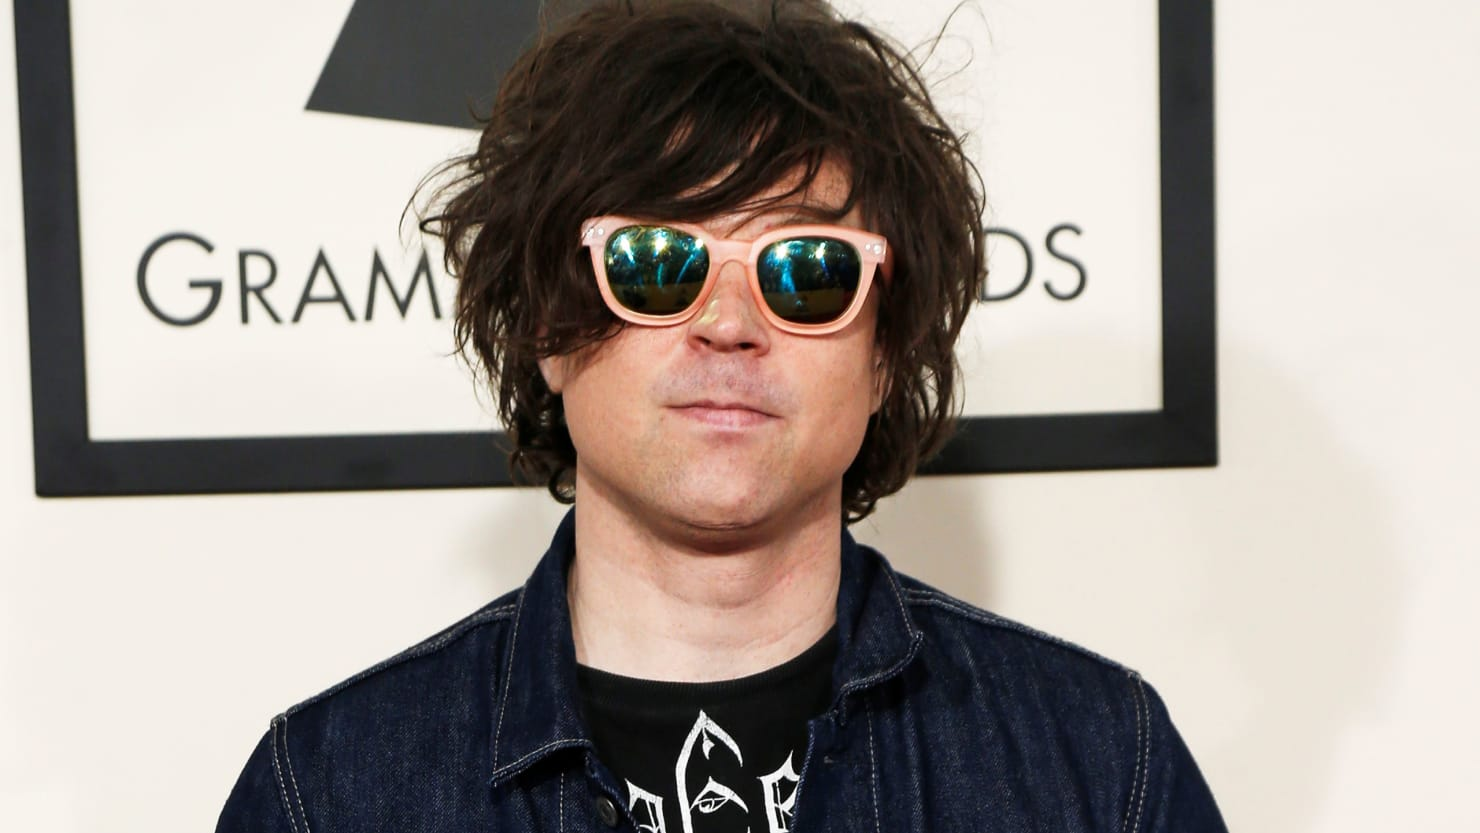 Ryan Adams Album Release Canceled Following Sexual-Misconduct Allegations